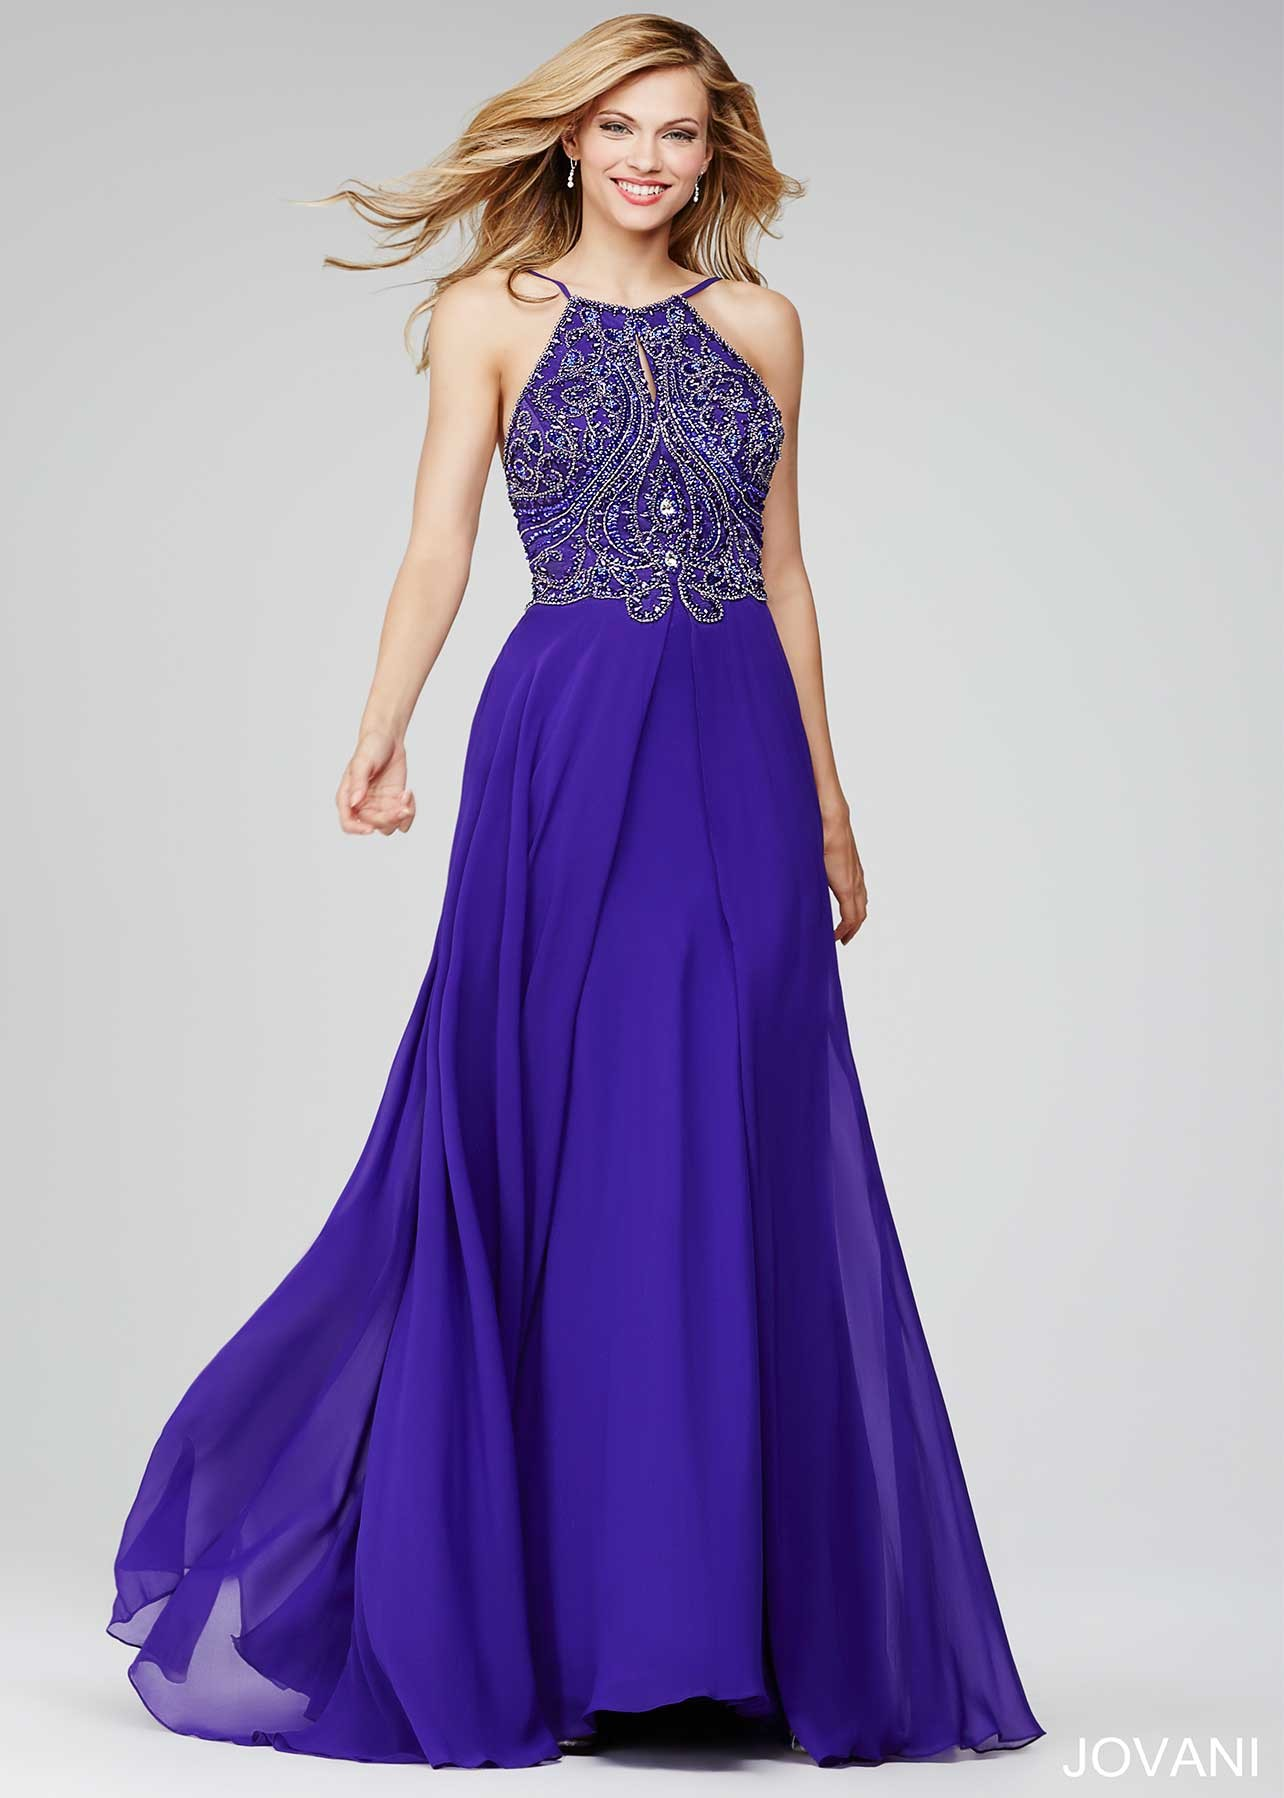 Jovani 92605 Beaded Halter Evening Dress